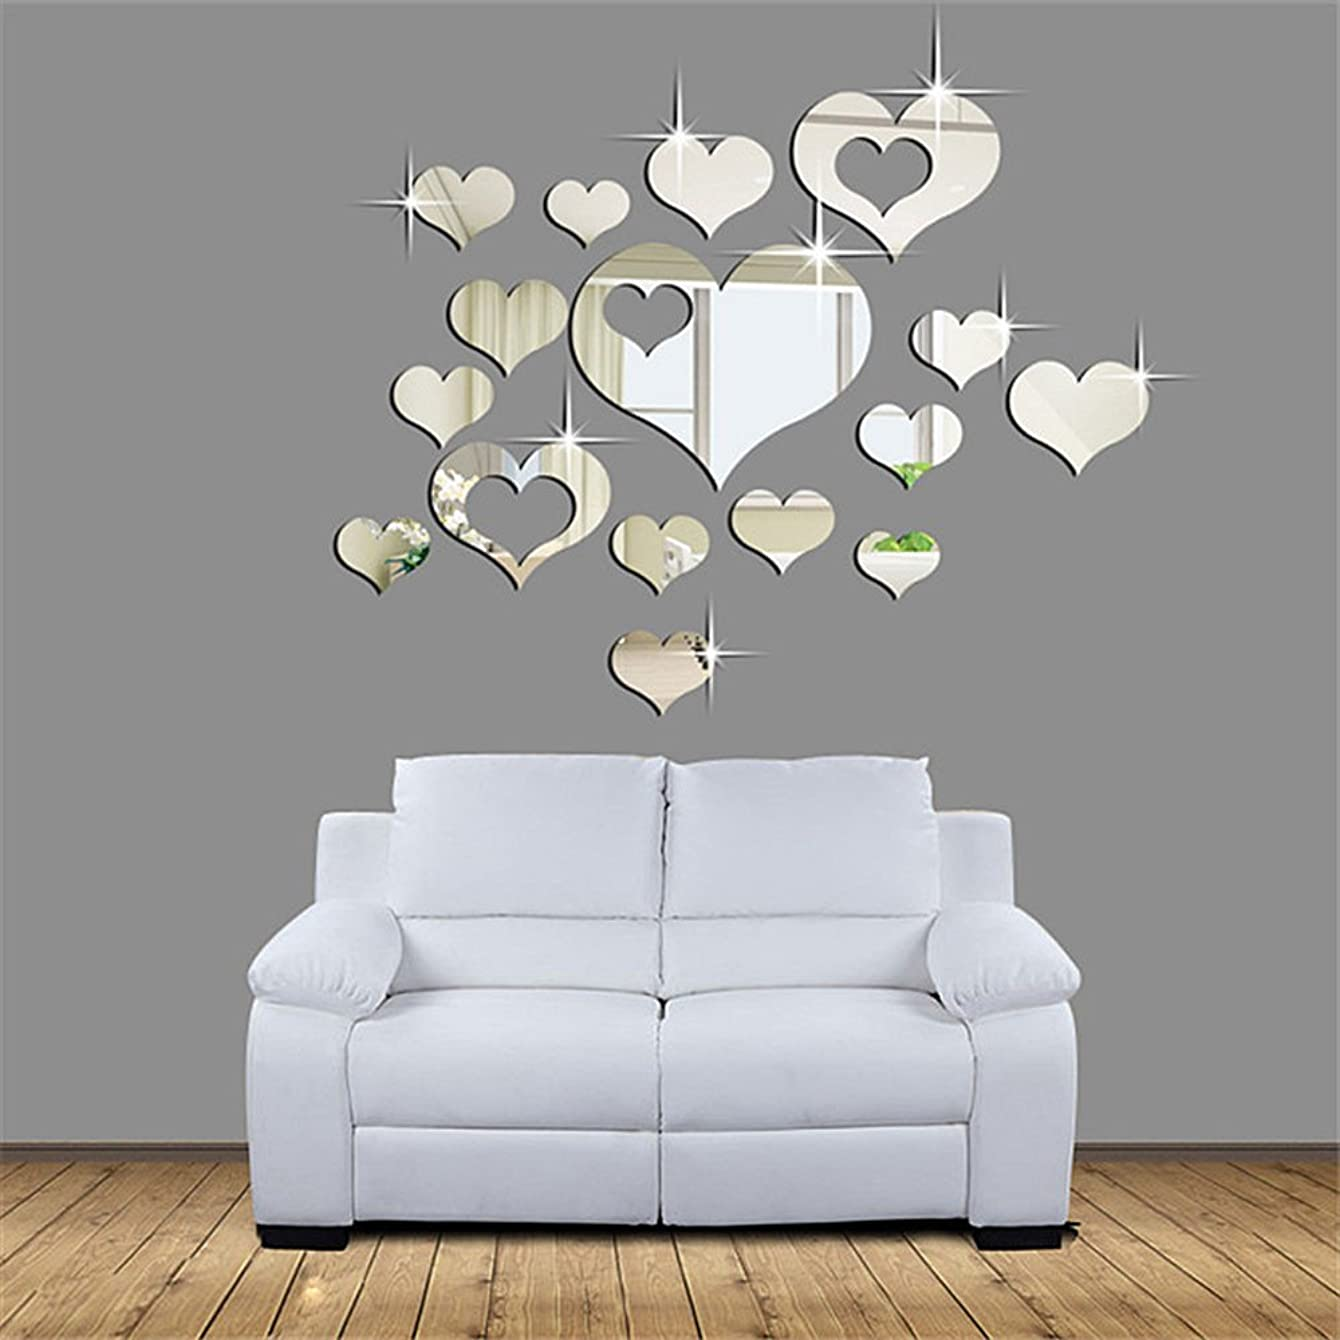 15 Pcs Acrylic Mirror Wall Stickers, E-Scenery Grand Sale! Love Heart Removable DIY 3D Wall Decals Mural Art Wallpaper for Room Home Nursery Wedding Party Birthday Office Window Decor, Silver